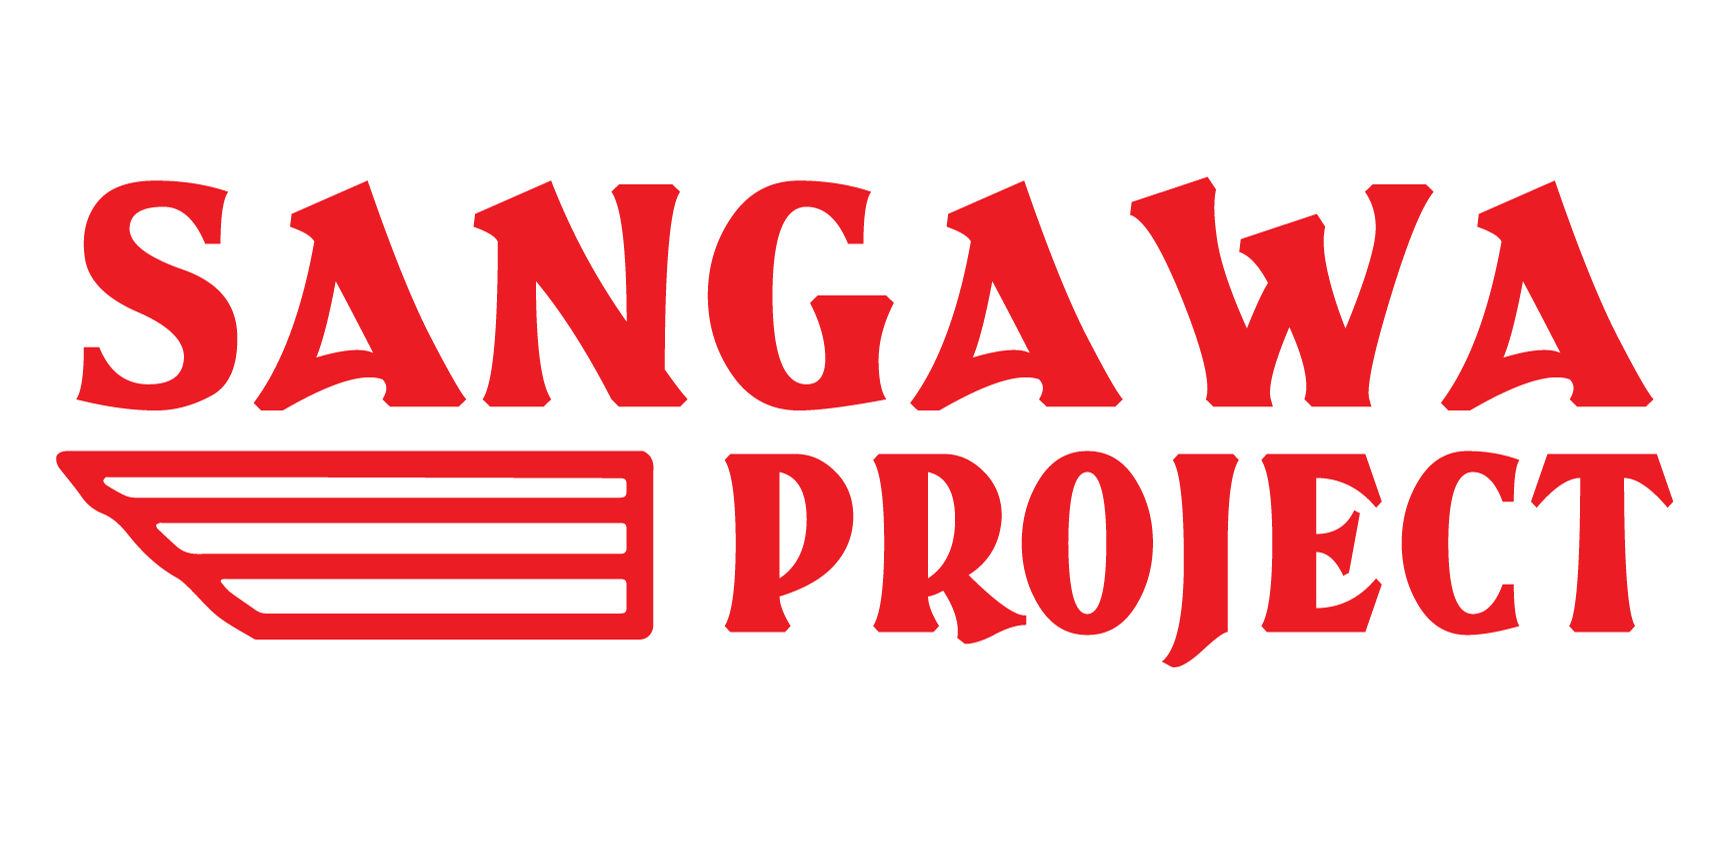 The Sangawa Project Presented By Pittsburgh Japanese Culture Society Is An 18 Convention In Which Fans Can Gather Together To Discuss Their Favorite